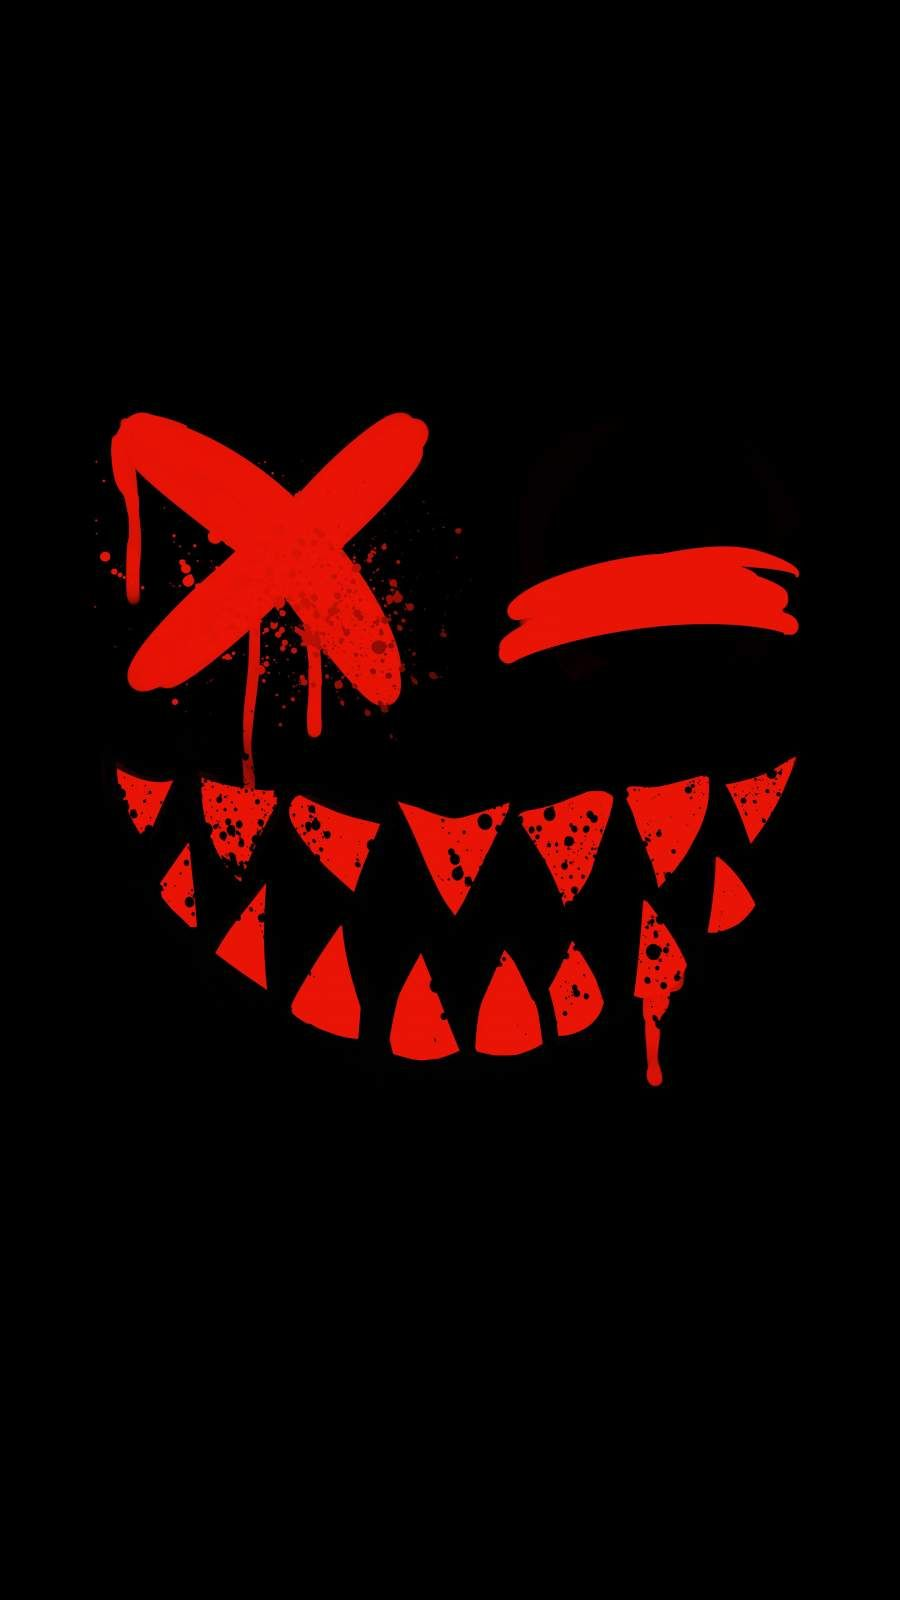 Evil Smile iPhone Wallpaper - iPhone Wallpapers